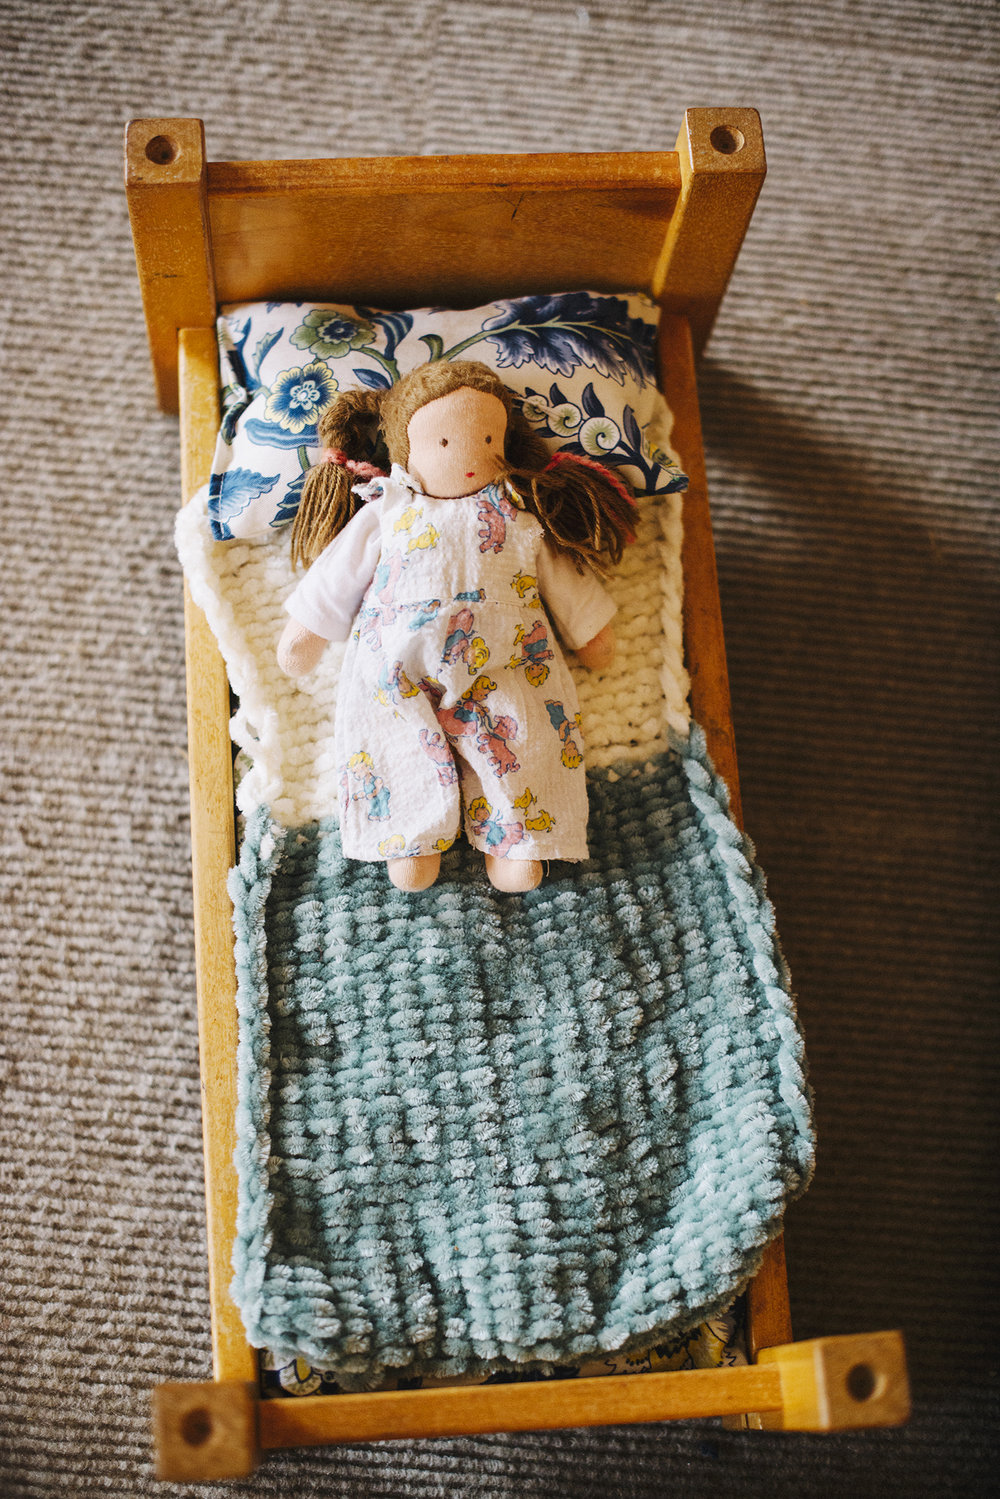 waldorf doll in toy bed.jpg